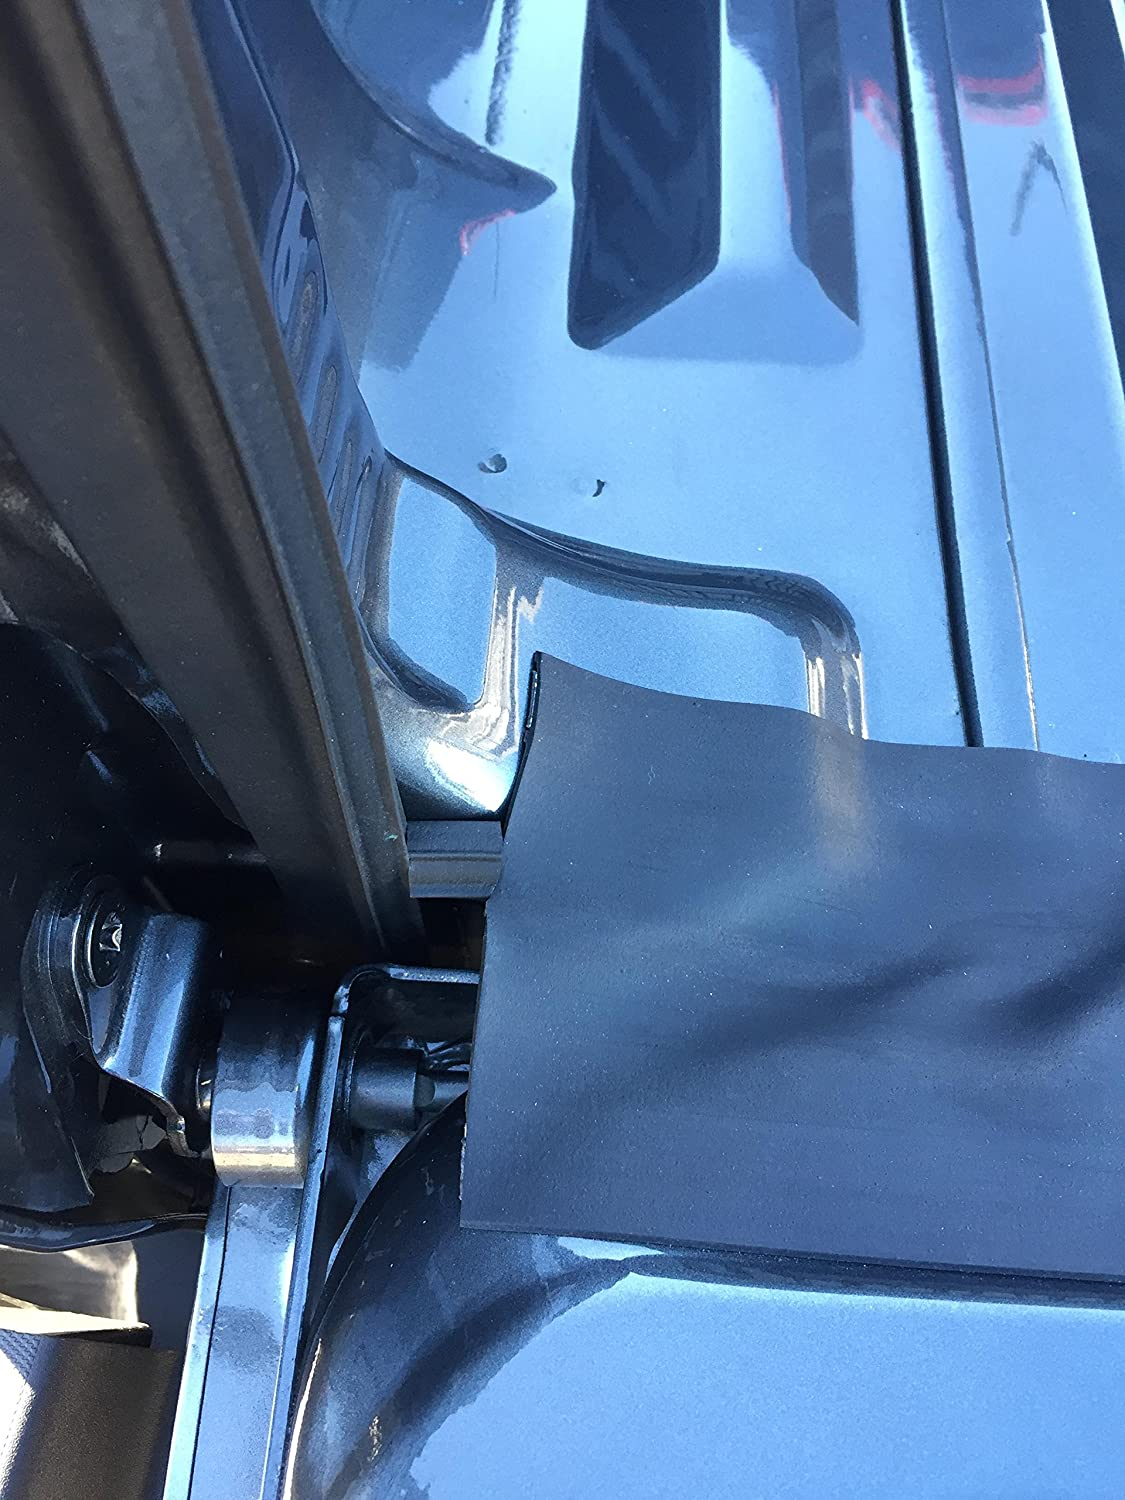 ESI ROK BLOCK 4.25 Tailgate Gap Cover and Ultimate Tailgate Seal with Taper Seal 5 1//2 for Sidewalls